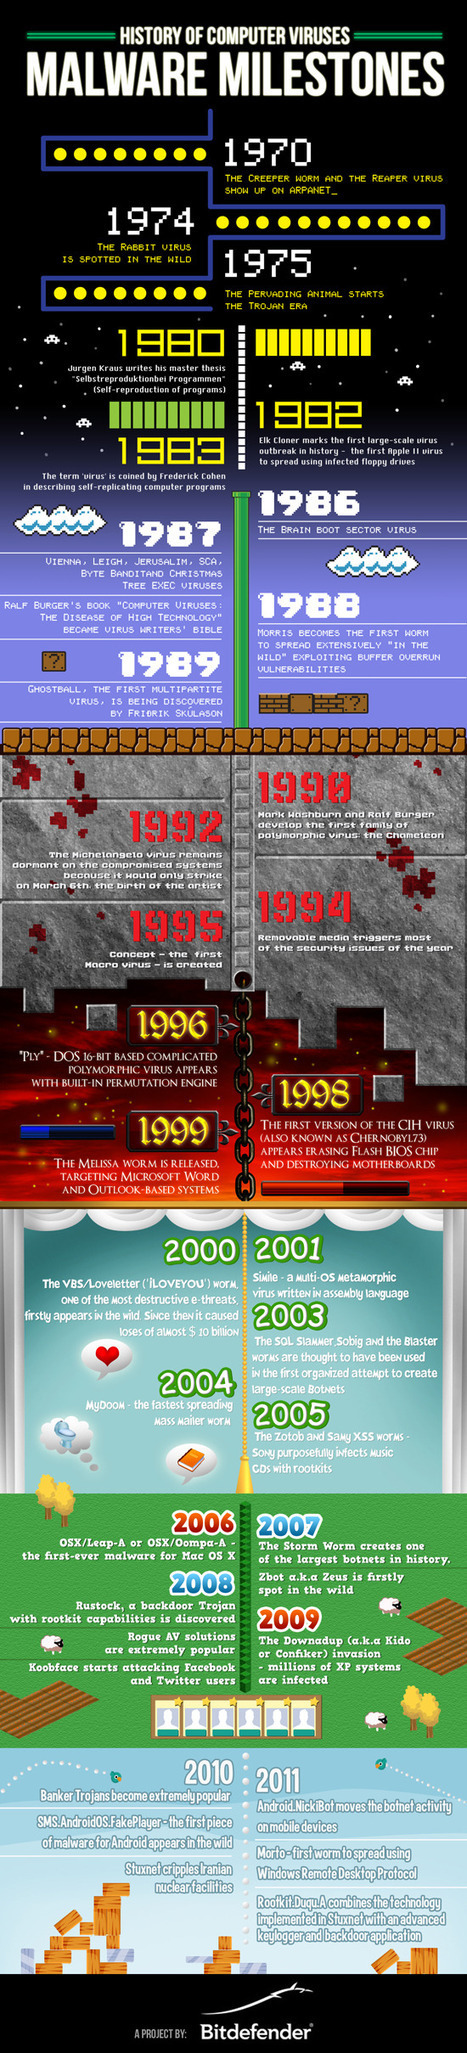 Infographic: Timeline and history of computer viruses | omnia mea mecum fero | Scoop.it